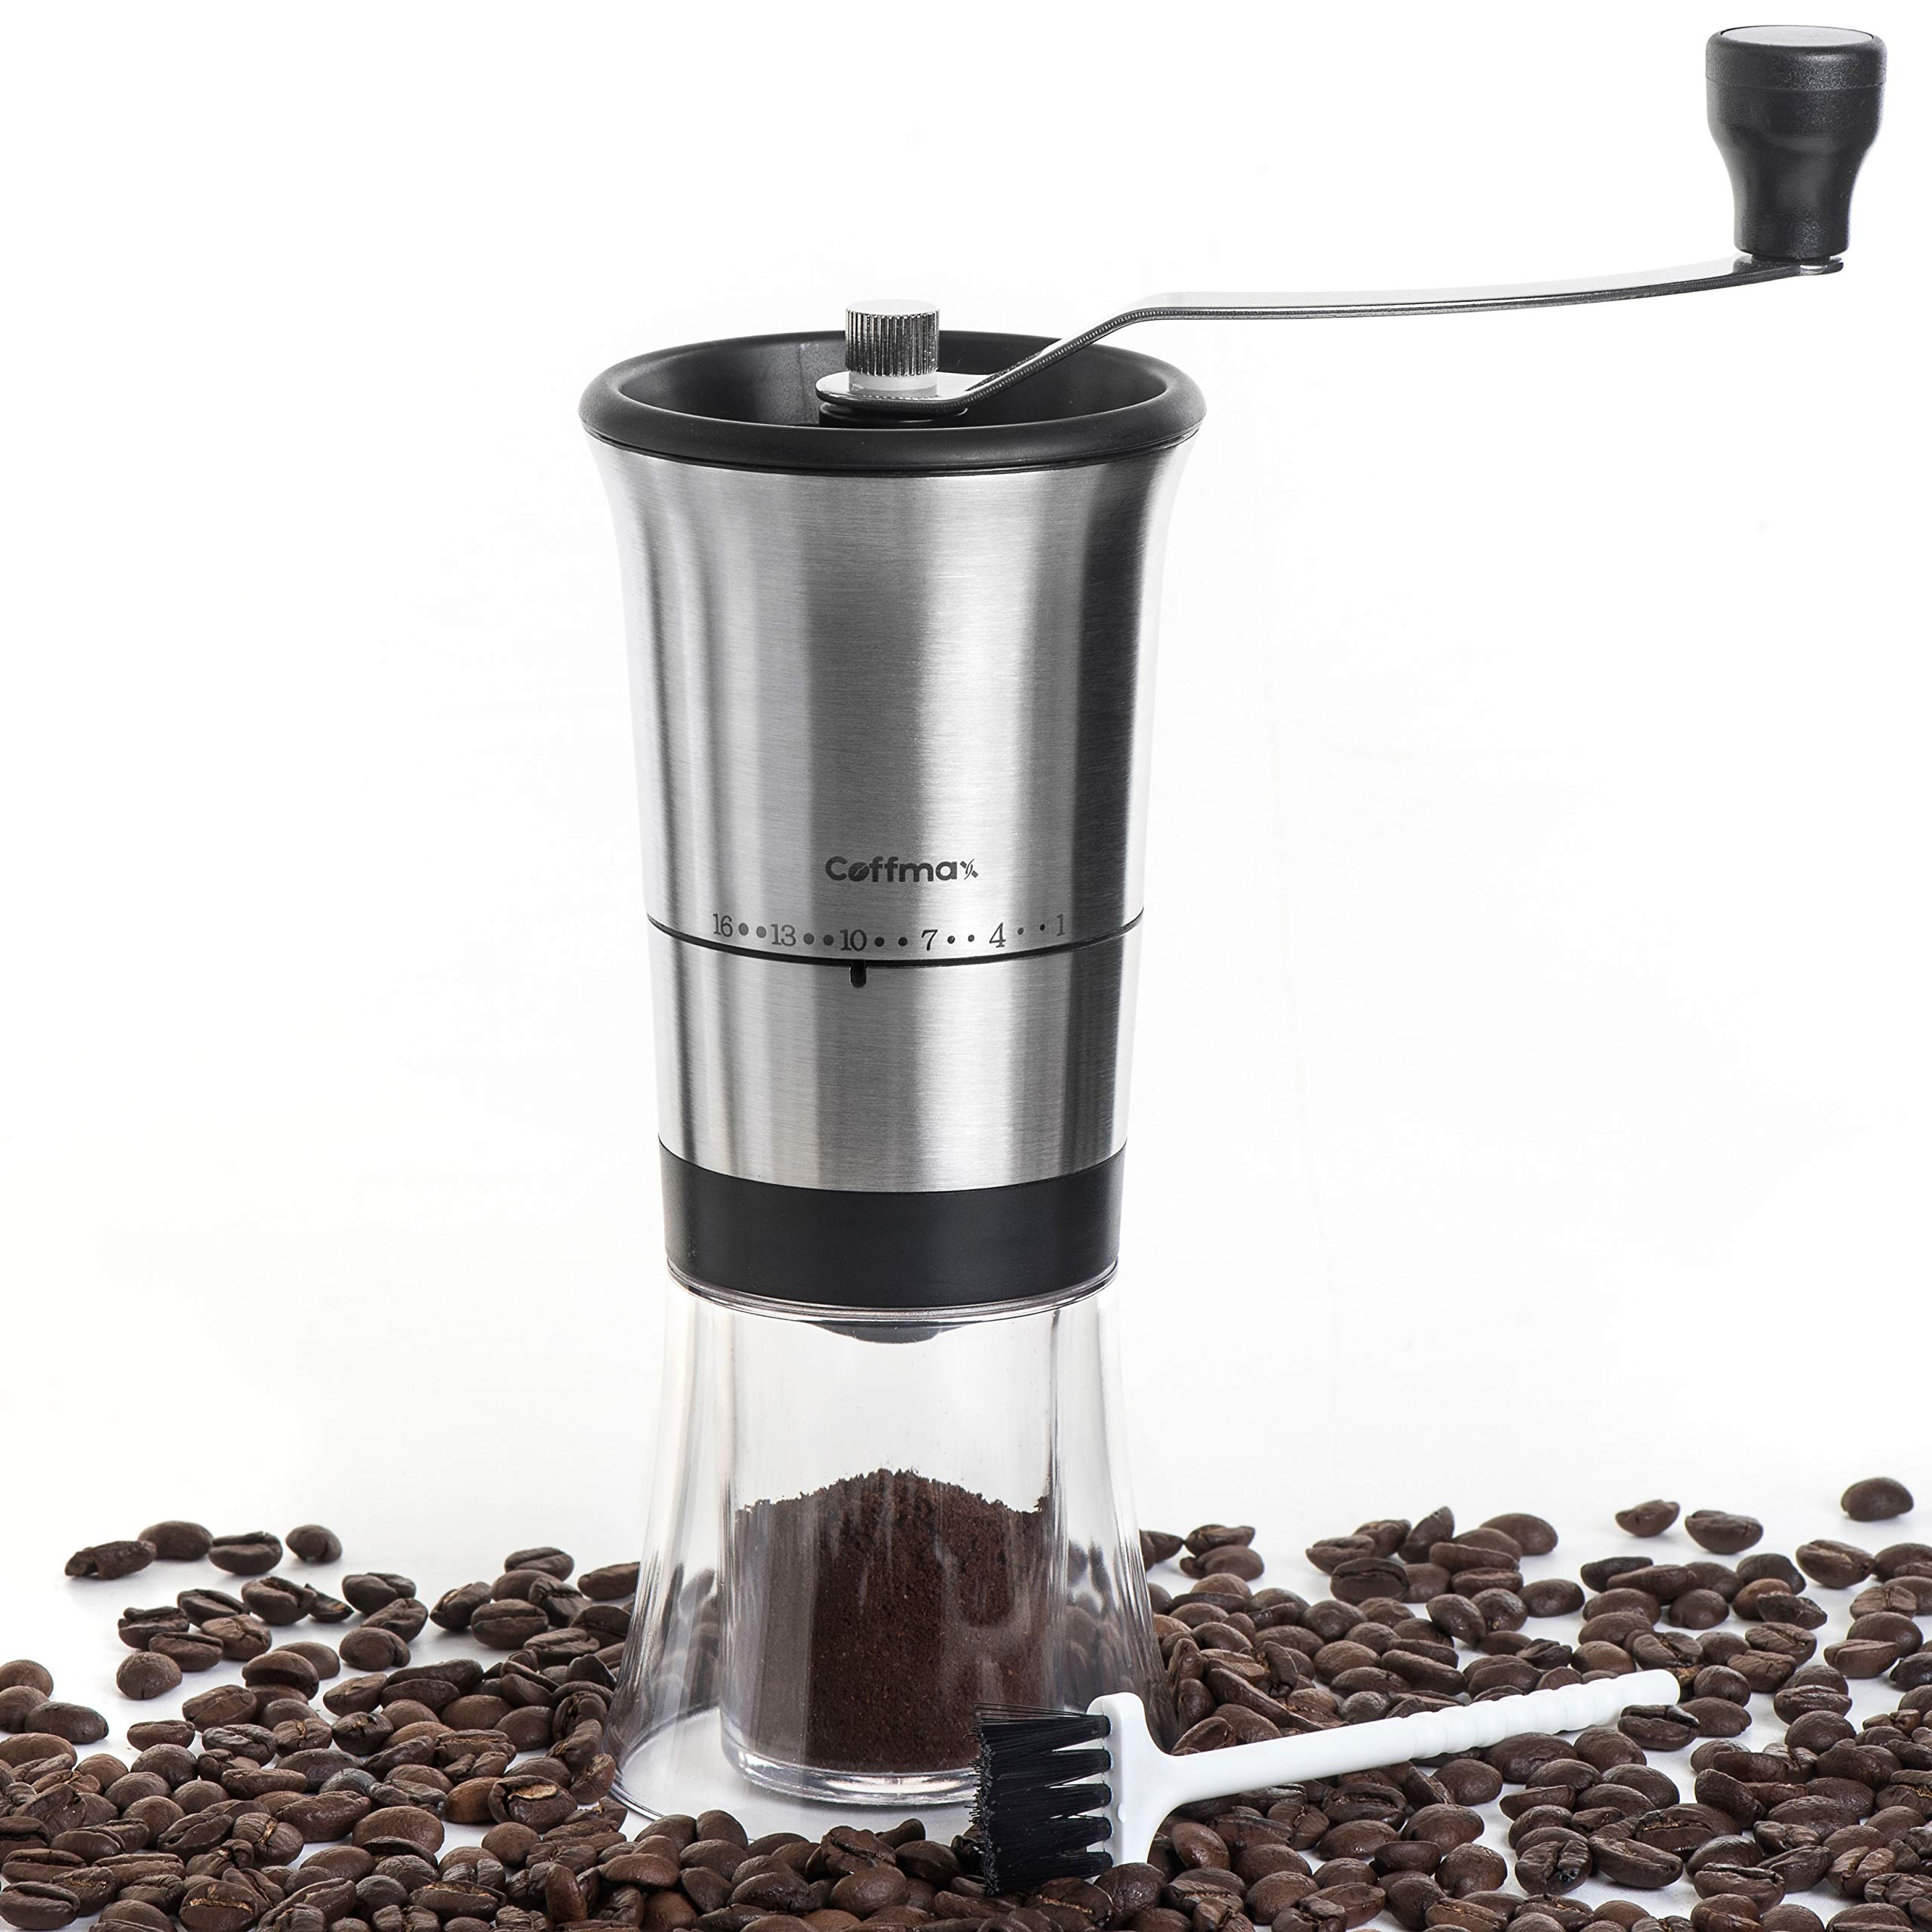 Coffmax Manual Coffee Grinder - Ceramic Conical Burr Mill with 16 Grind Settings - Quiet Coffee Beans Grinder with Stainless Steel Hand Crank + BONUS Cleaning Brush & eBook - Perfect for Travel & Camping